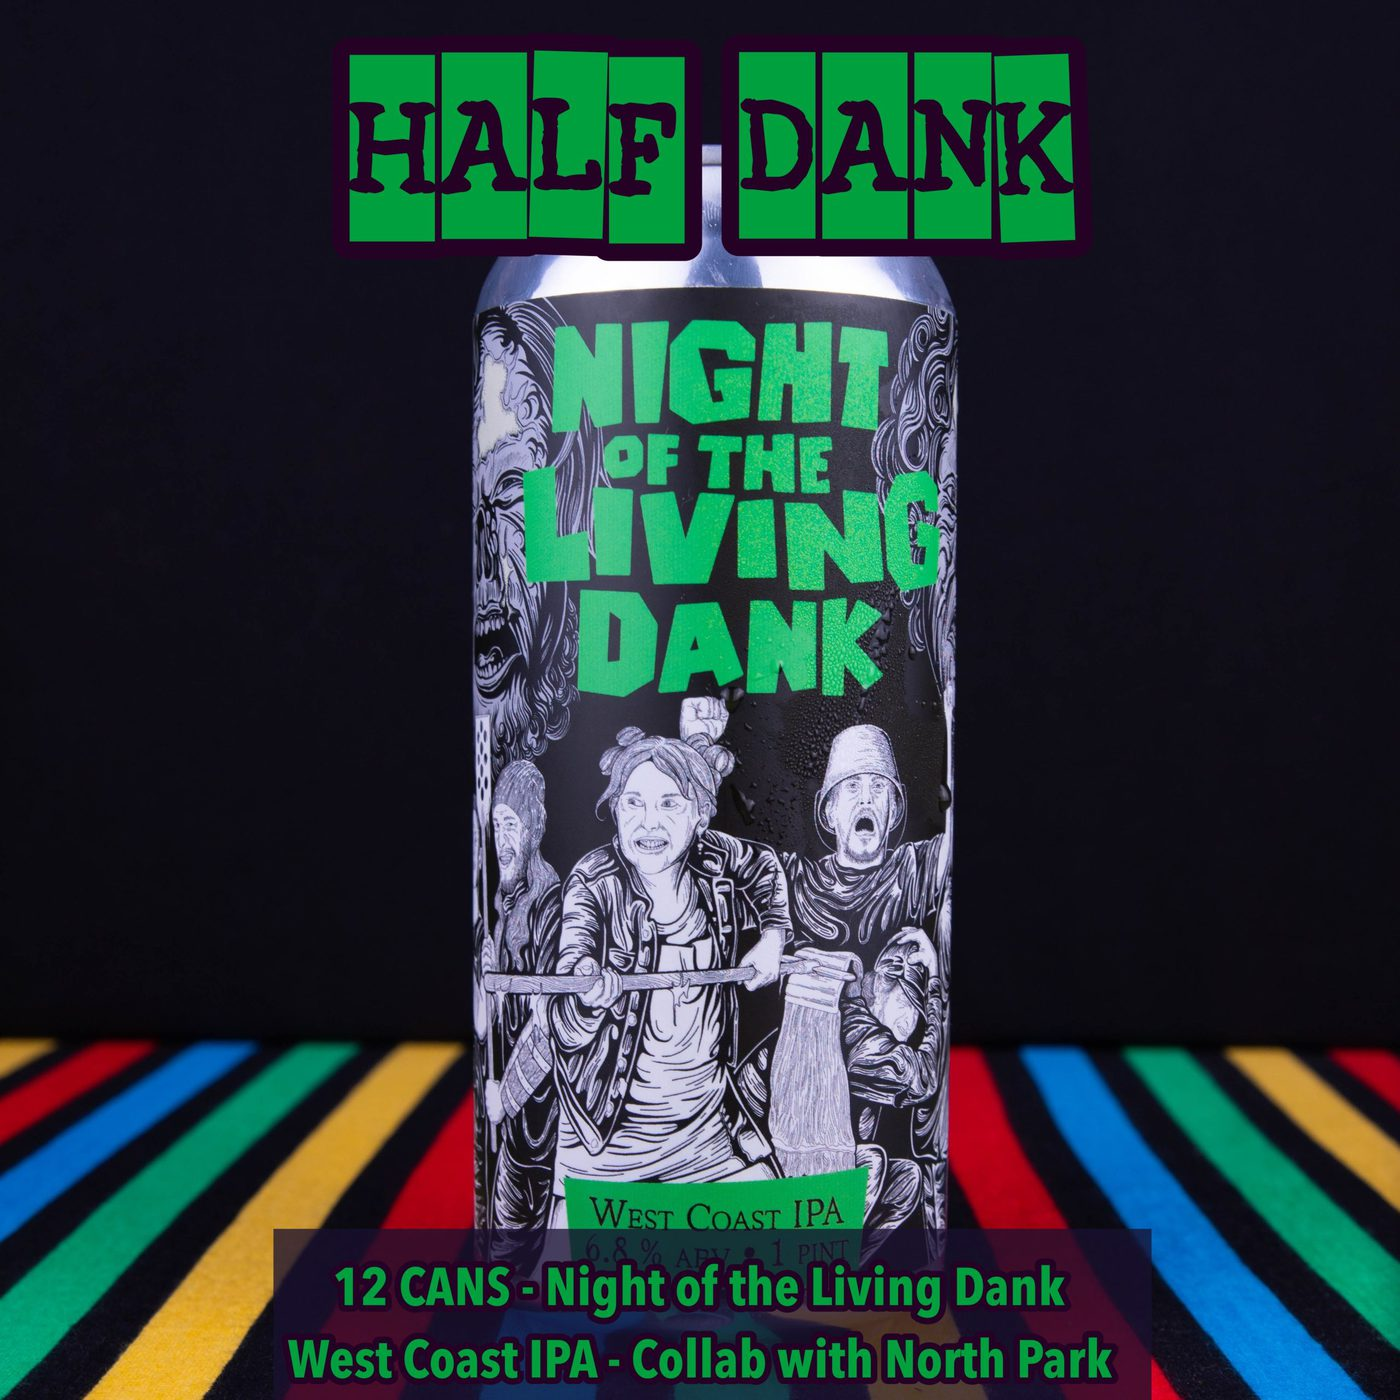 12 CANS Night Of The Living Dank – West Coast IPA Collab With North Park  – Shipping Out Tuesday 5/4 For Next Day Delivery*